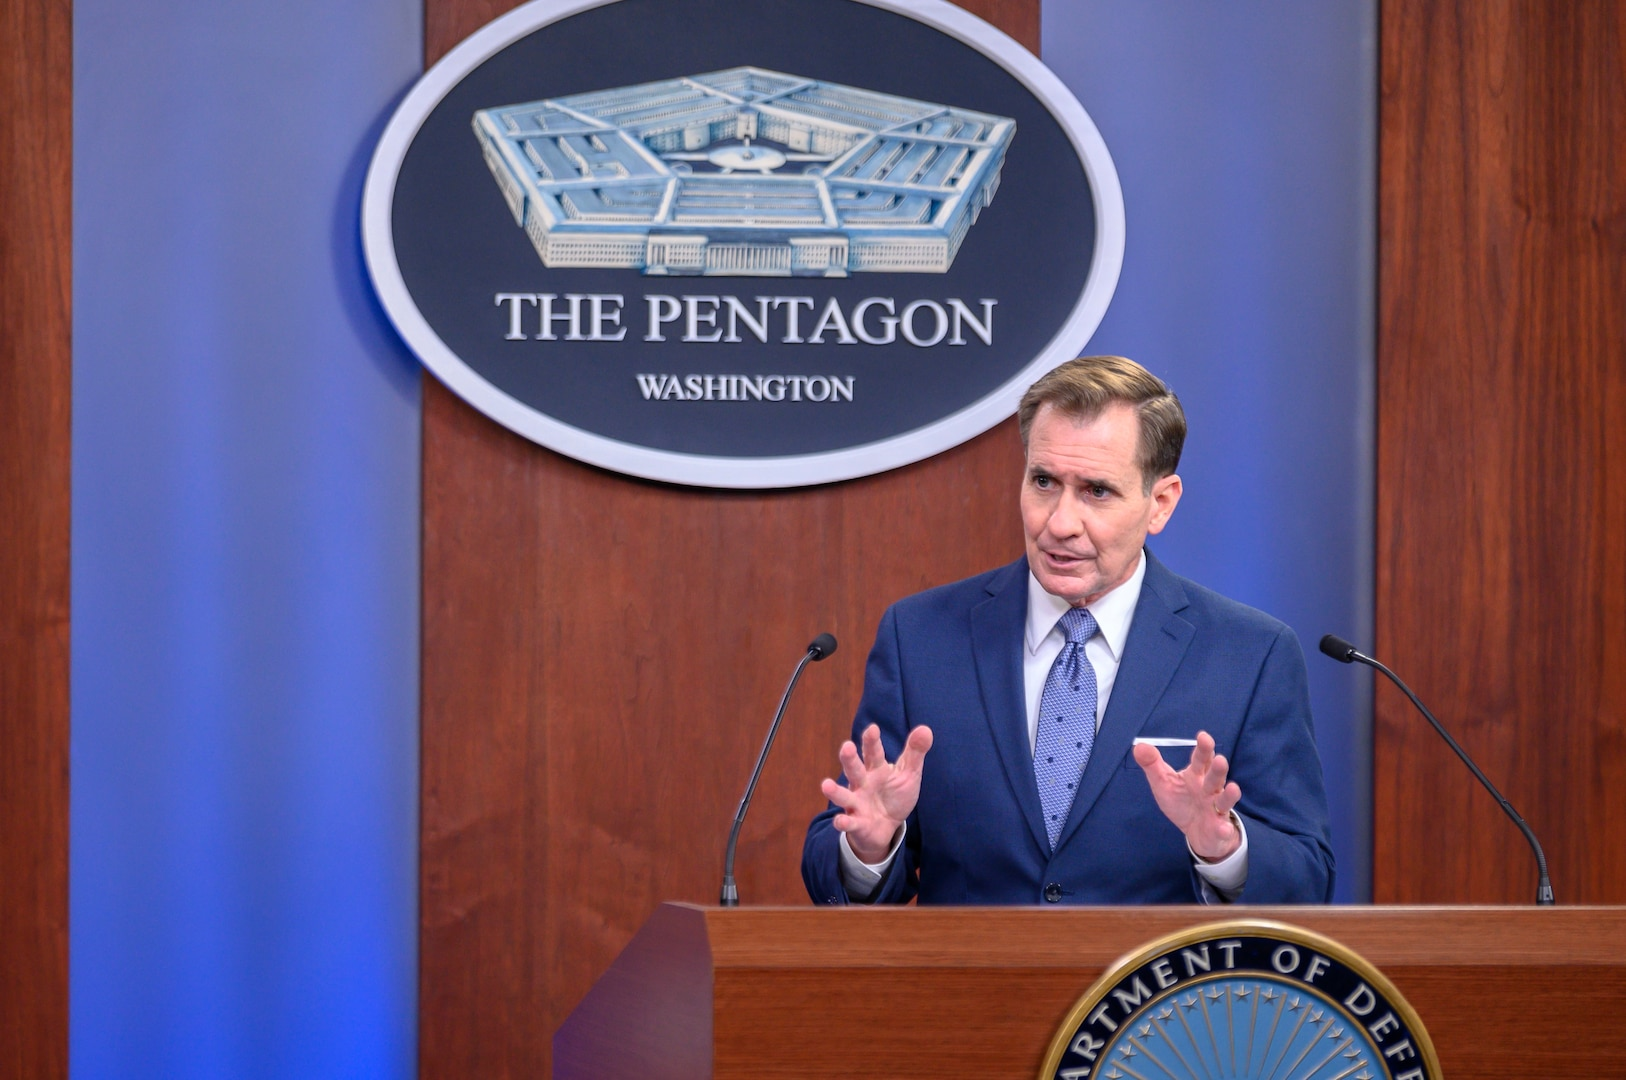 A man at a lectern with two microphones gestures. The sign behind him indicates that he is at the Pentagon.